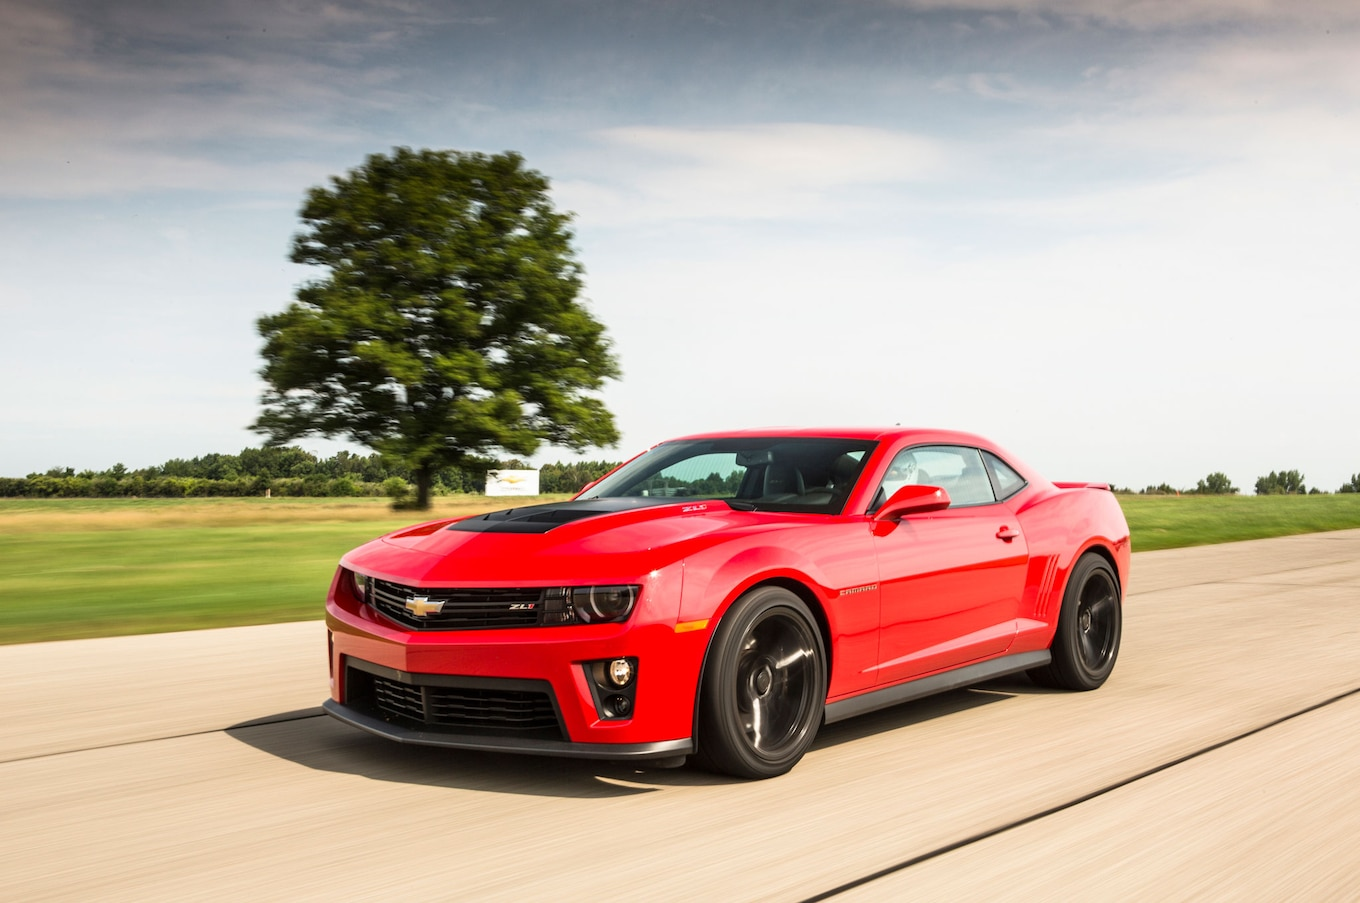 Best Of 2013 Chevy Camaro Zl1 Specs Honda Civic And